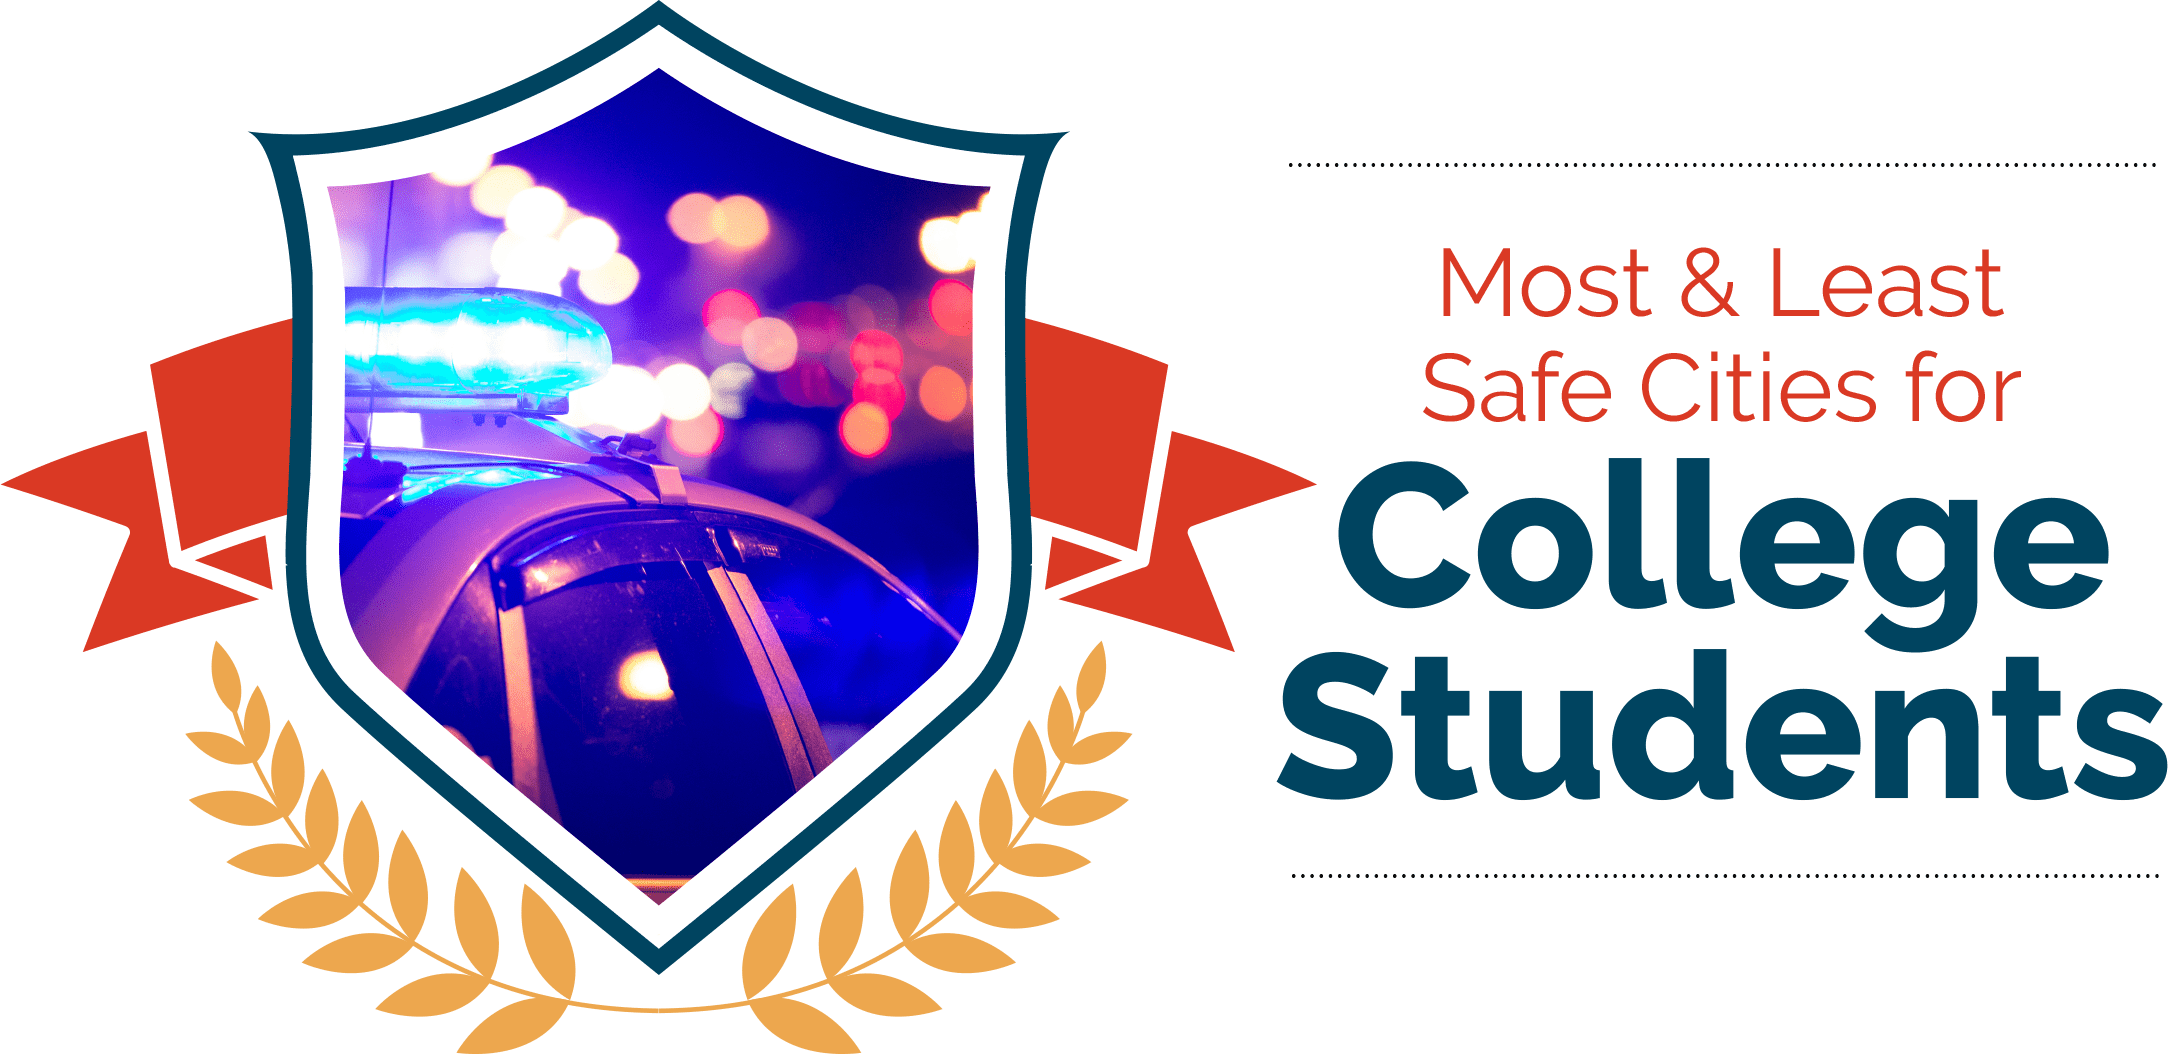 Most & Least Safe Cities for College Students